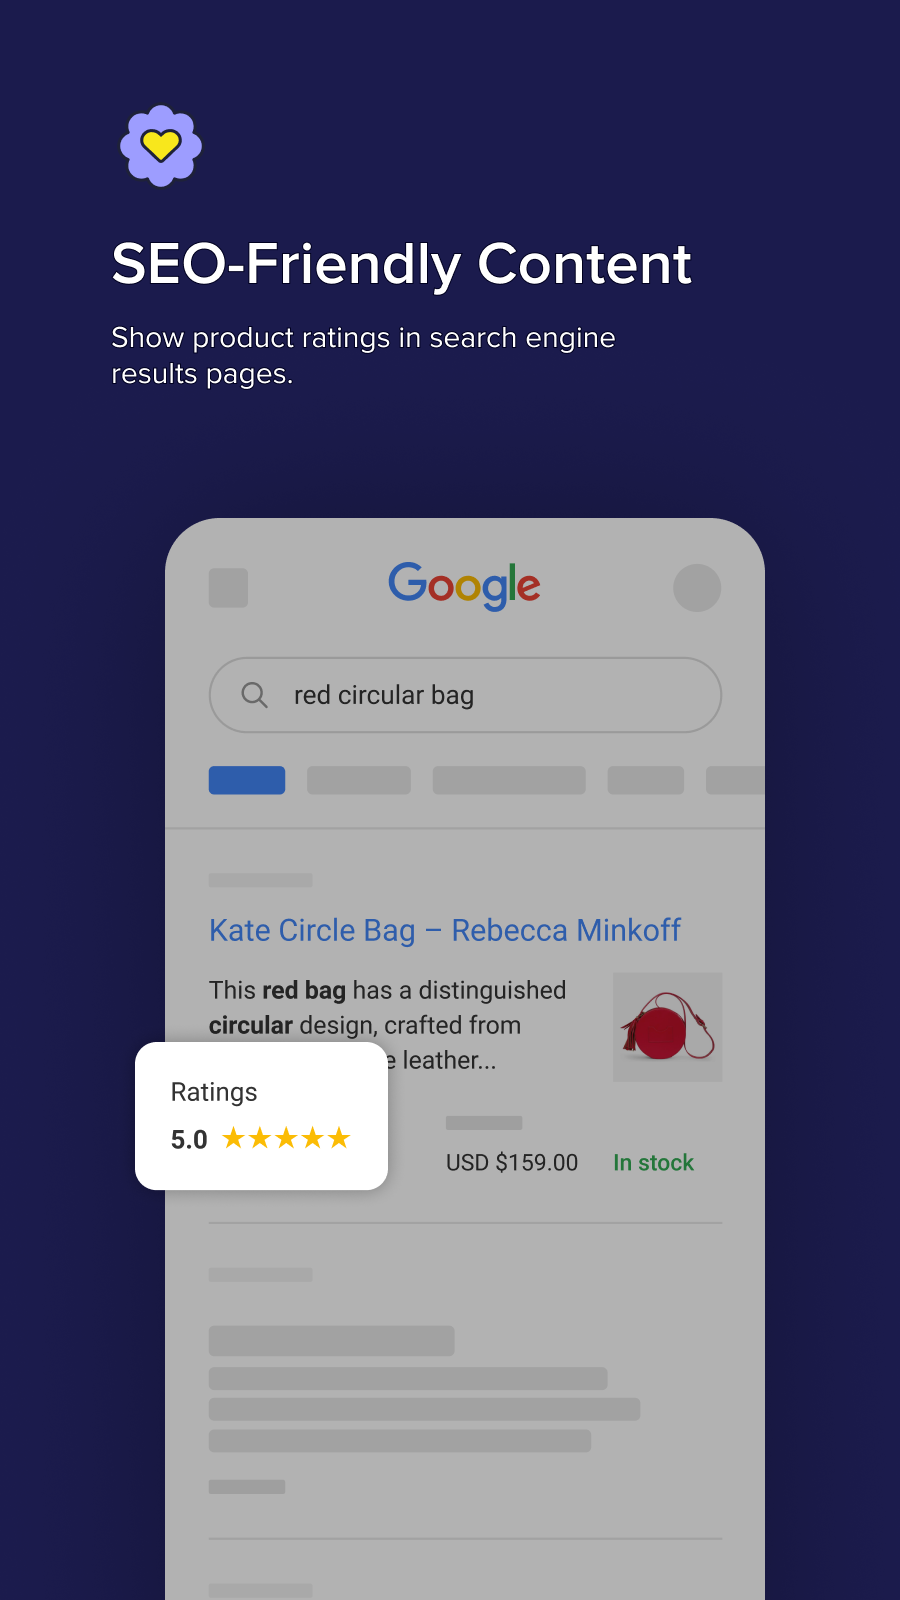 Show product ratings in Google with SEO-optimized reviews.